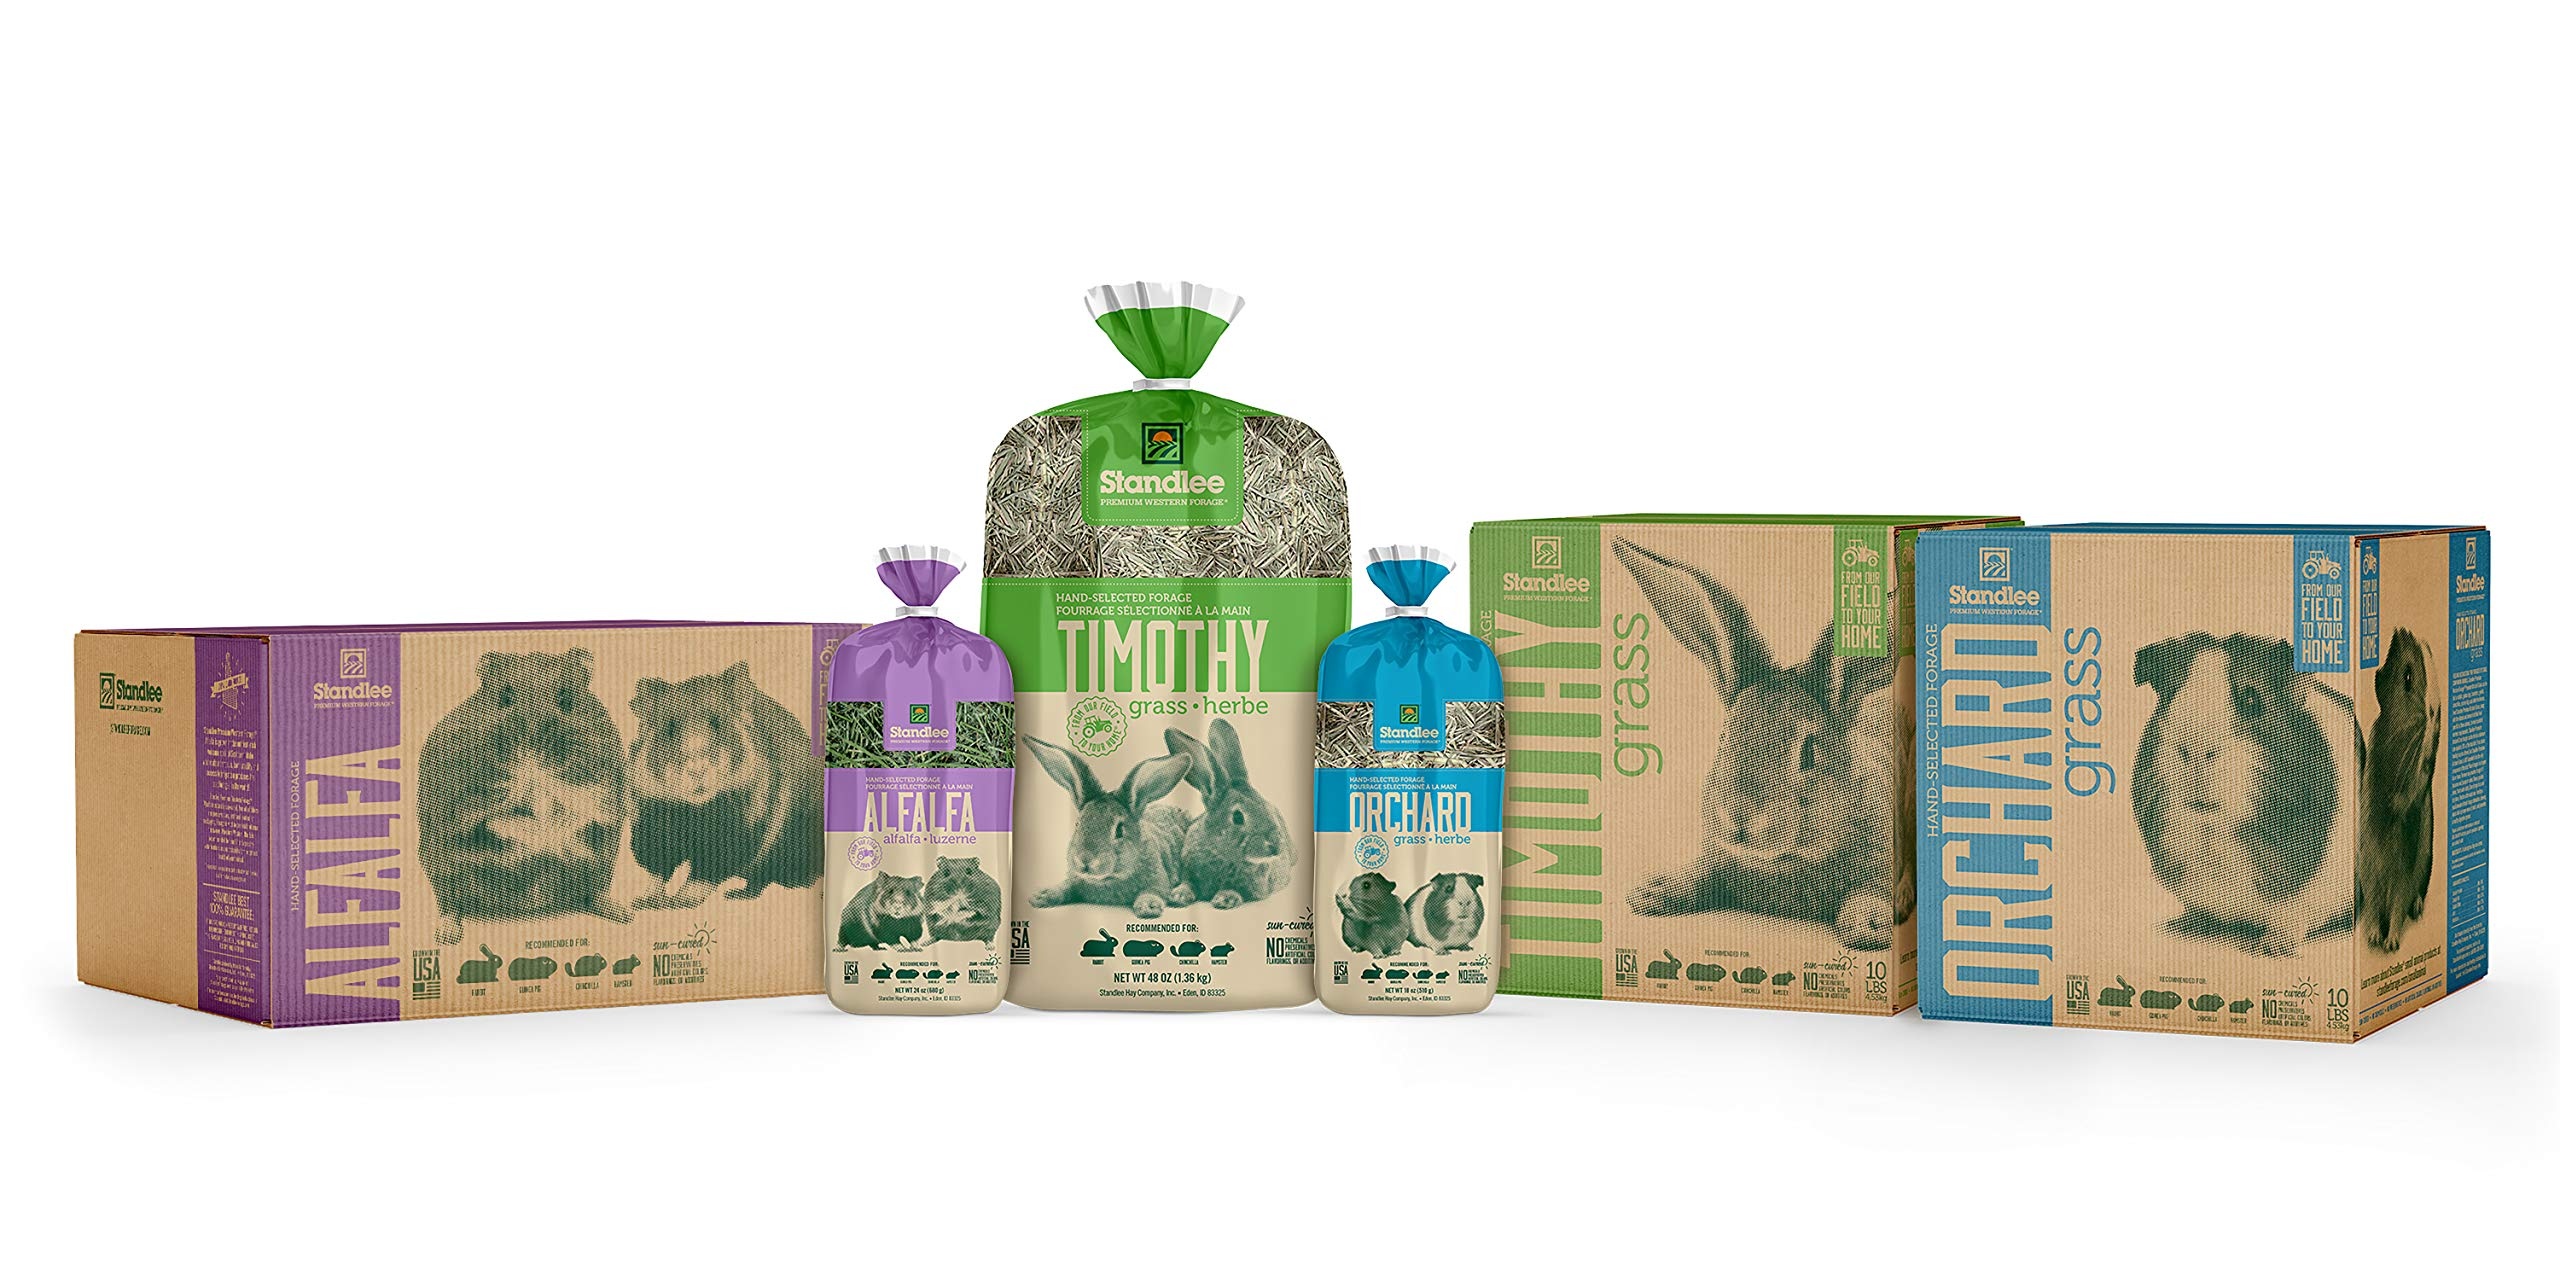 STANDLEE Premium Timothy Grass Hand-Selected Forage, 10lb Box by Standlee Hay Company (Image #2)